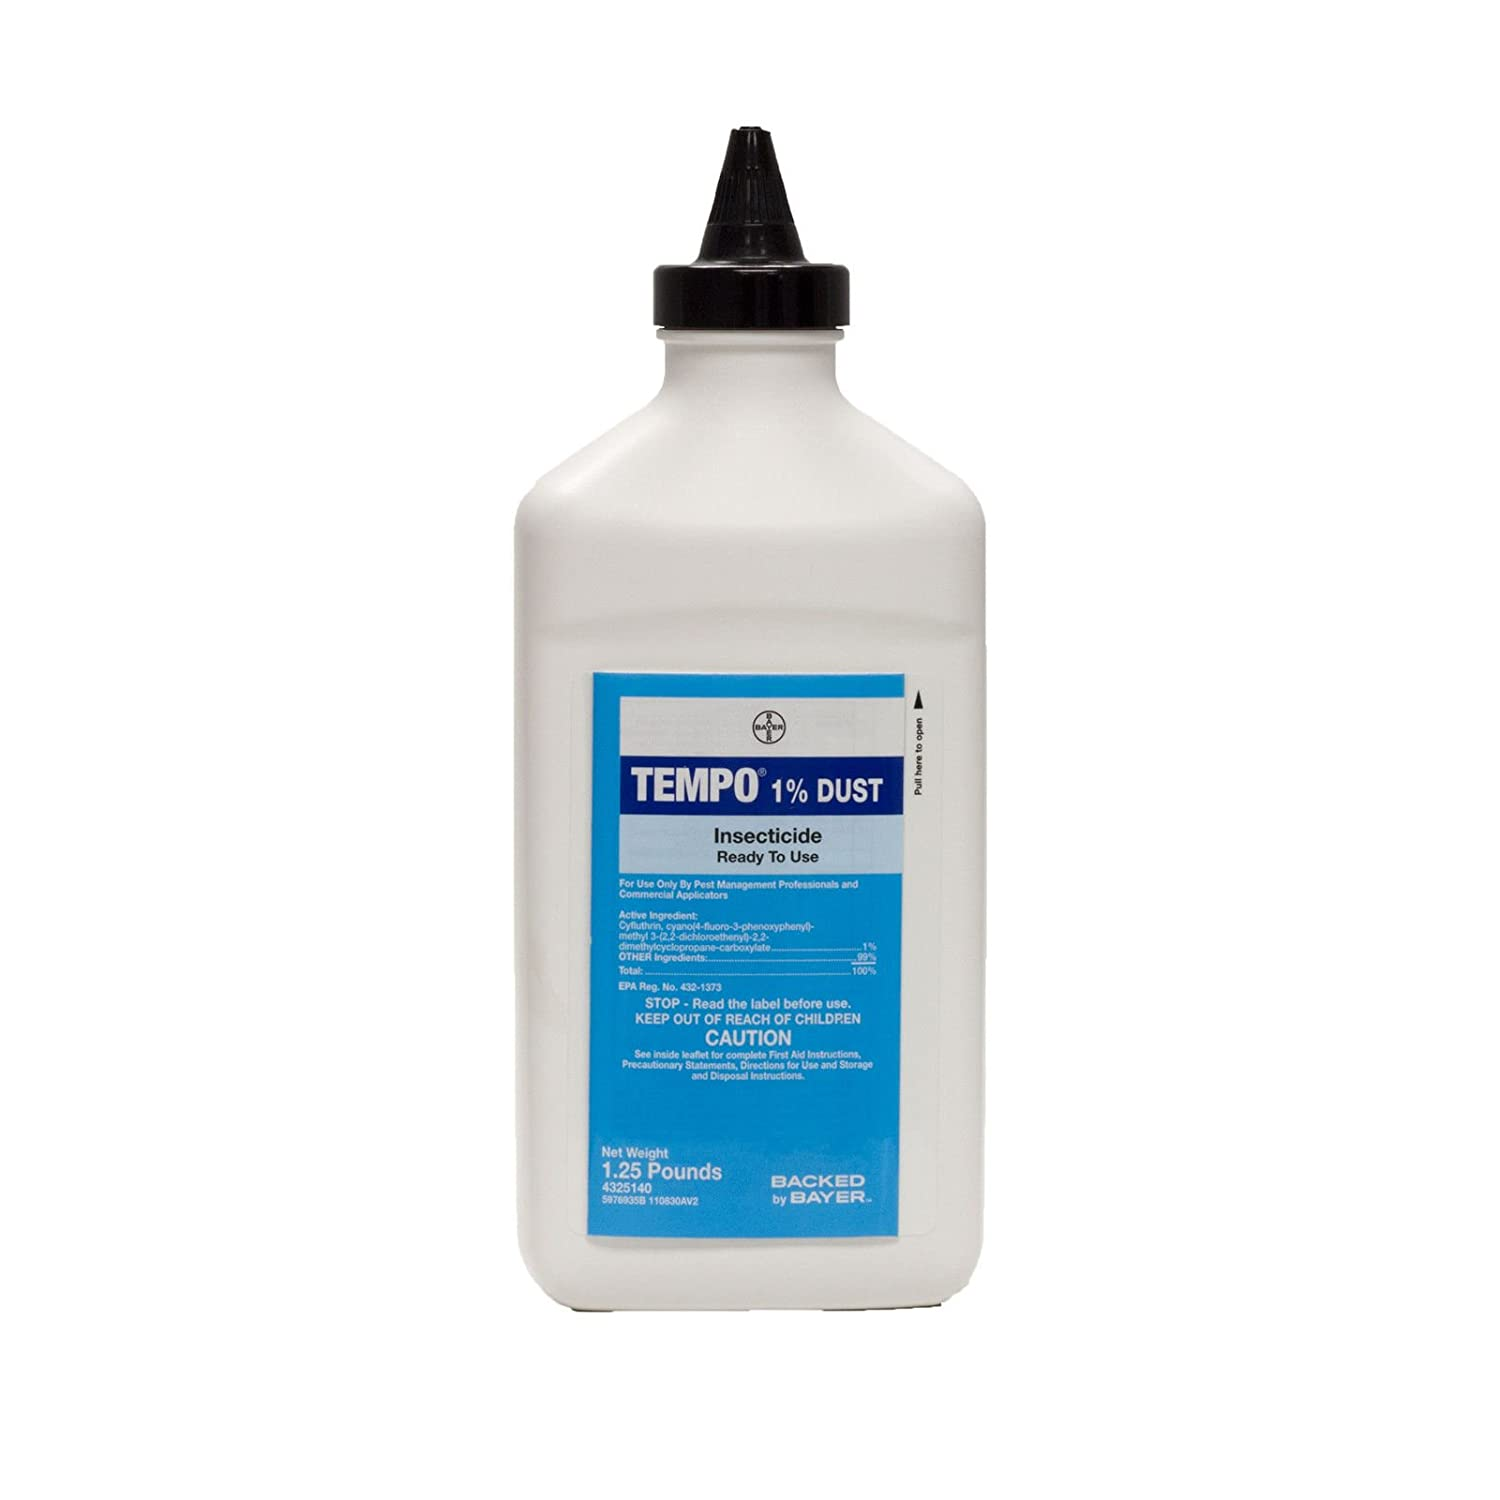 Tempo Dust Insecticide Powder Kills Bedbugs Roaches ***NOT FOR SALE TO: CA, NY, SC, CT